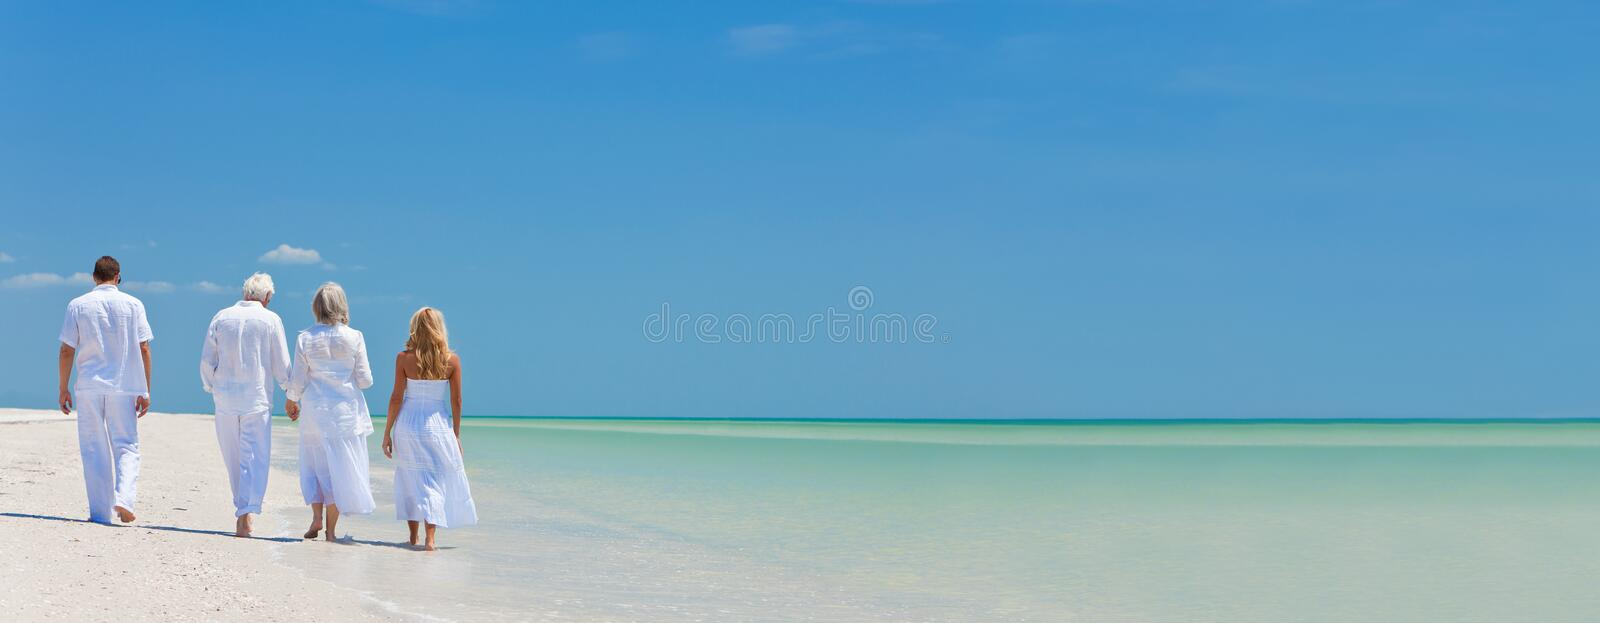 Four People, Two Seniors, Family Couples, Walking On Tropical Be stock photo